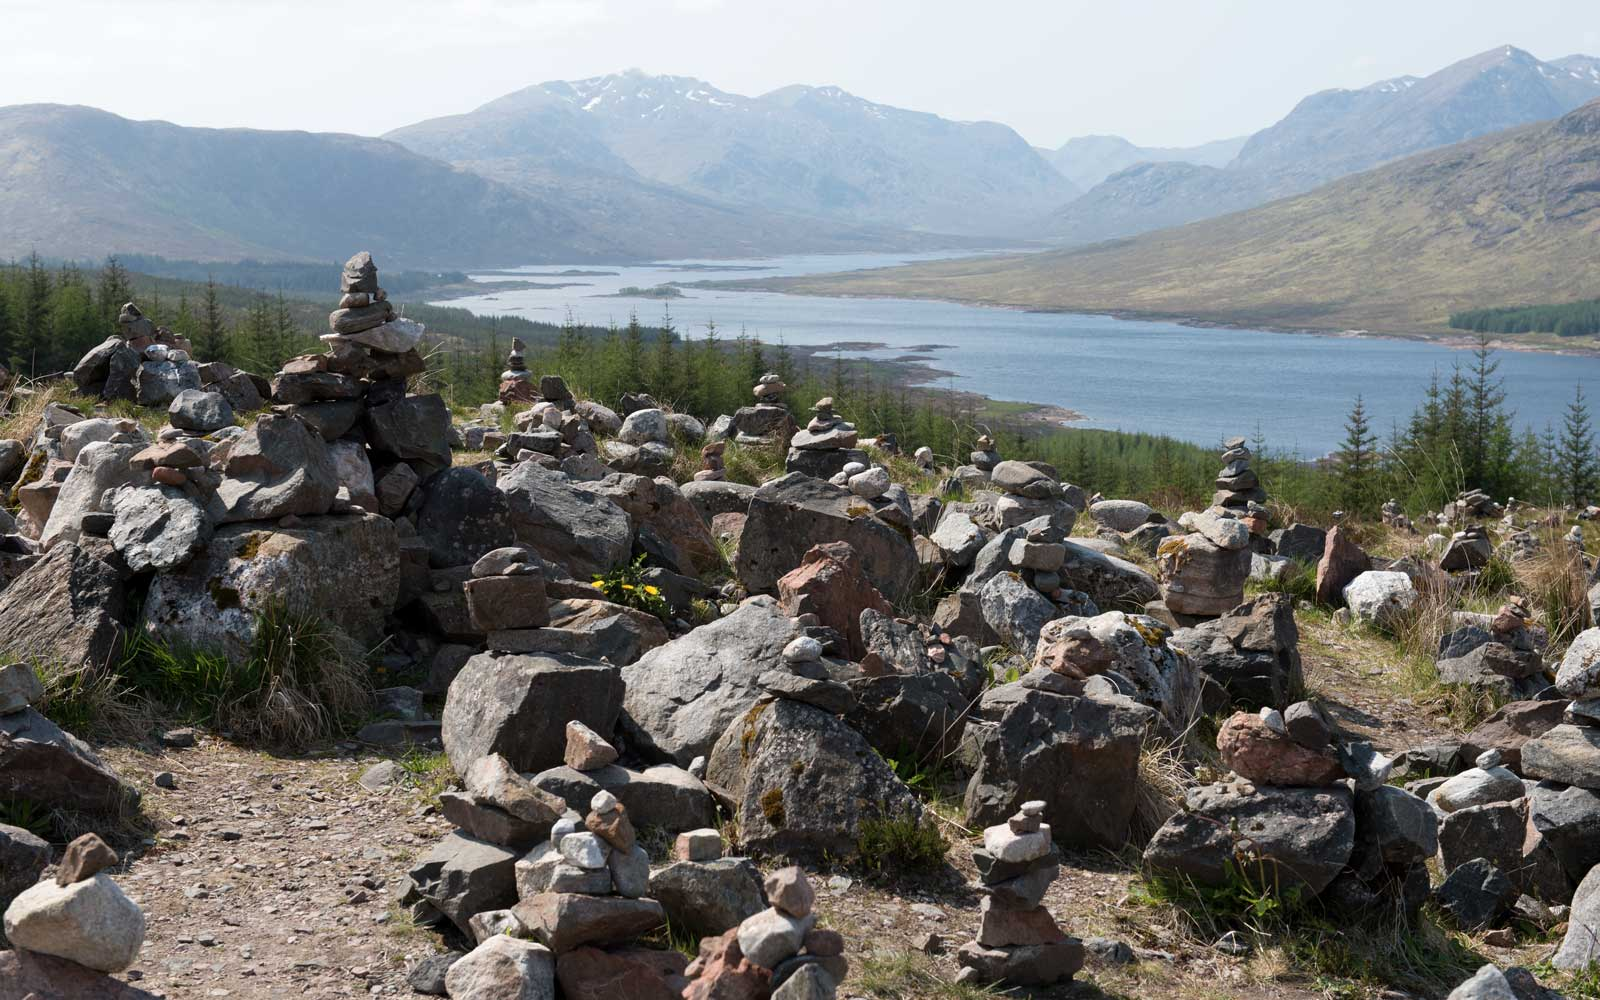 On top of a hill by the A87 trunk road from Invergarry to The Isle of Skye, there are hundreds of stone cairns, which have been constructed in an almost ritualistic way by passers by.